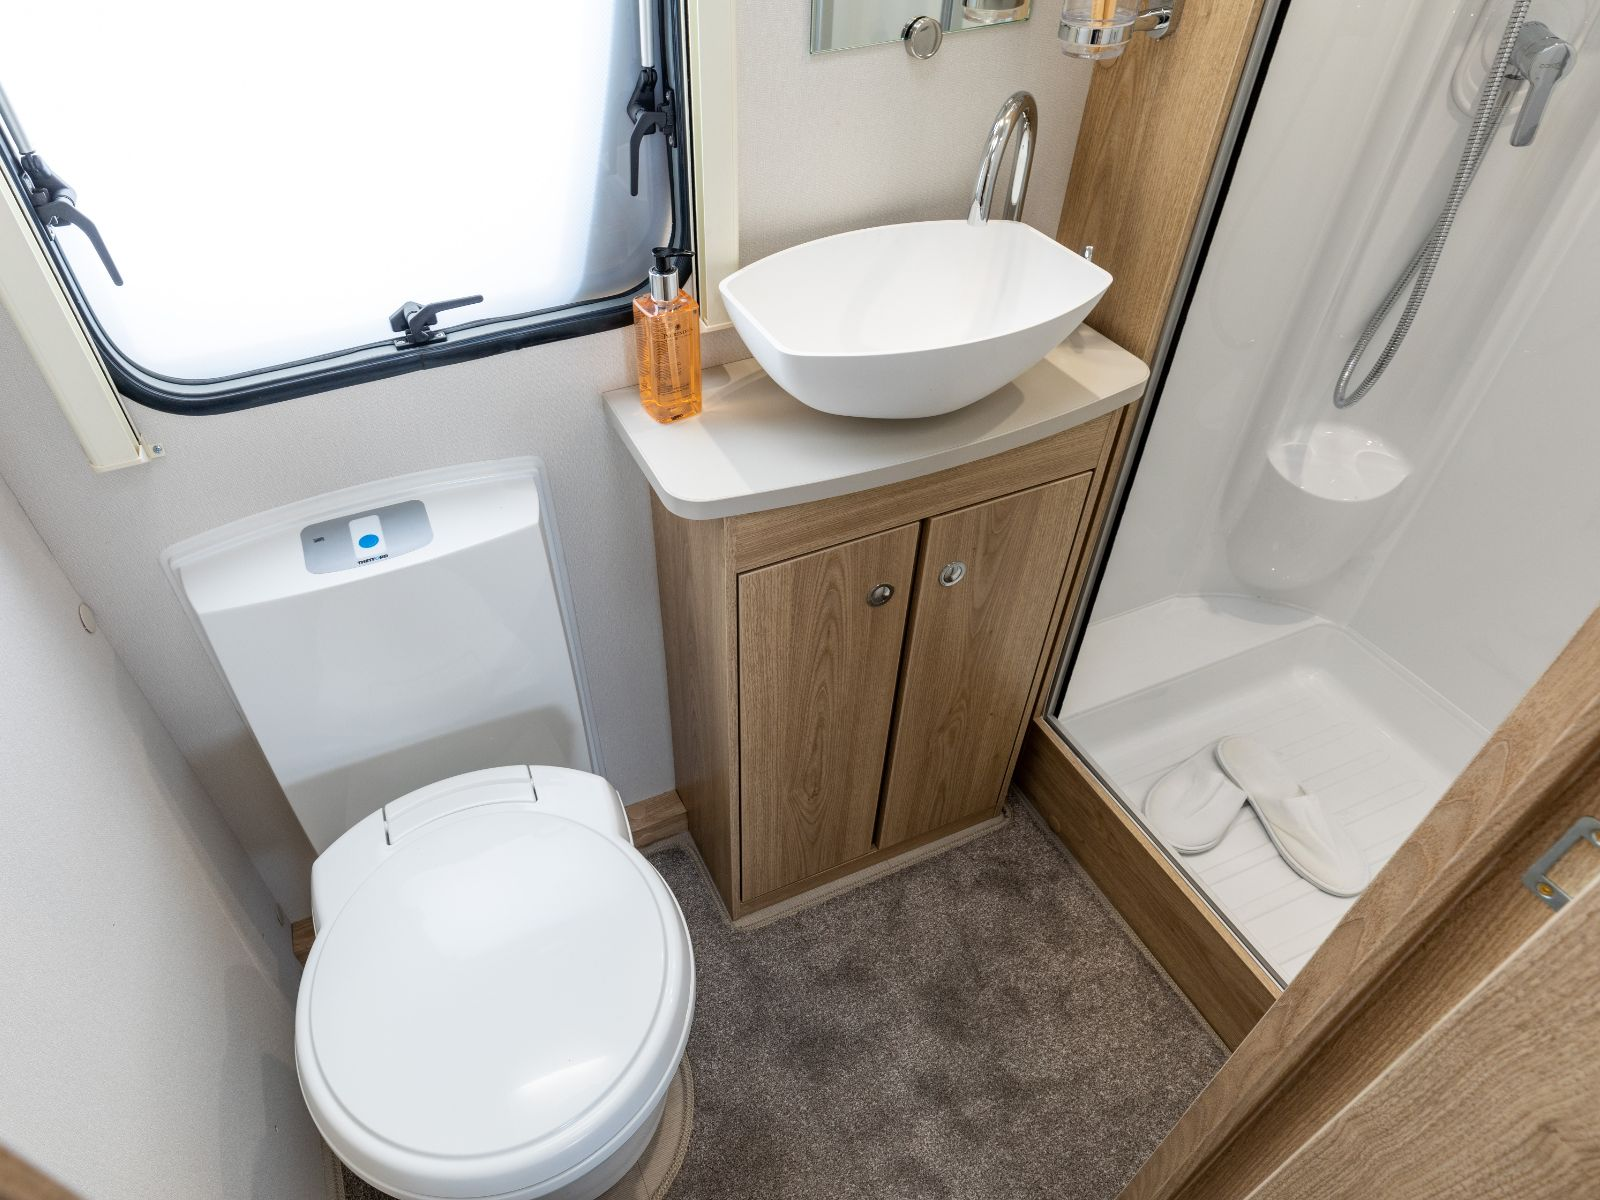 Bathroom layout with shower, sink and toilet'